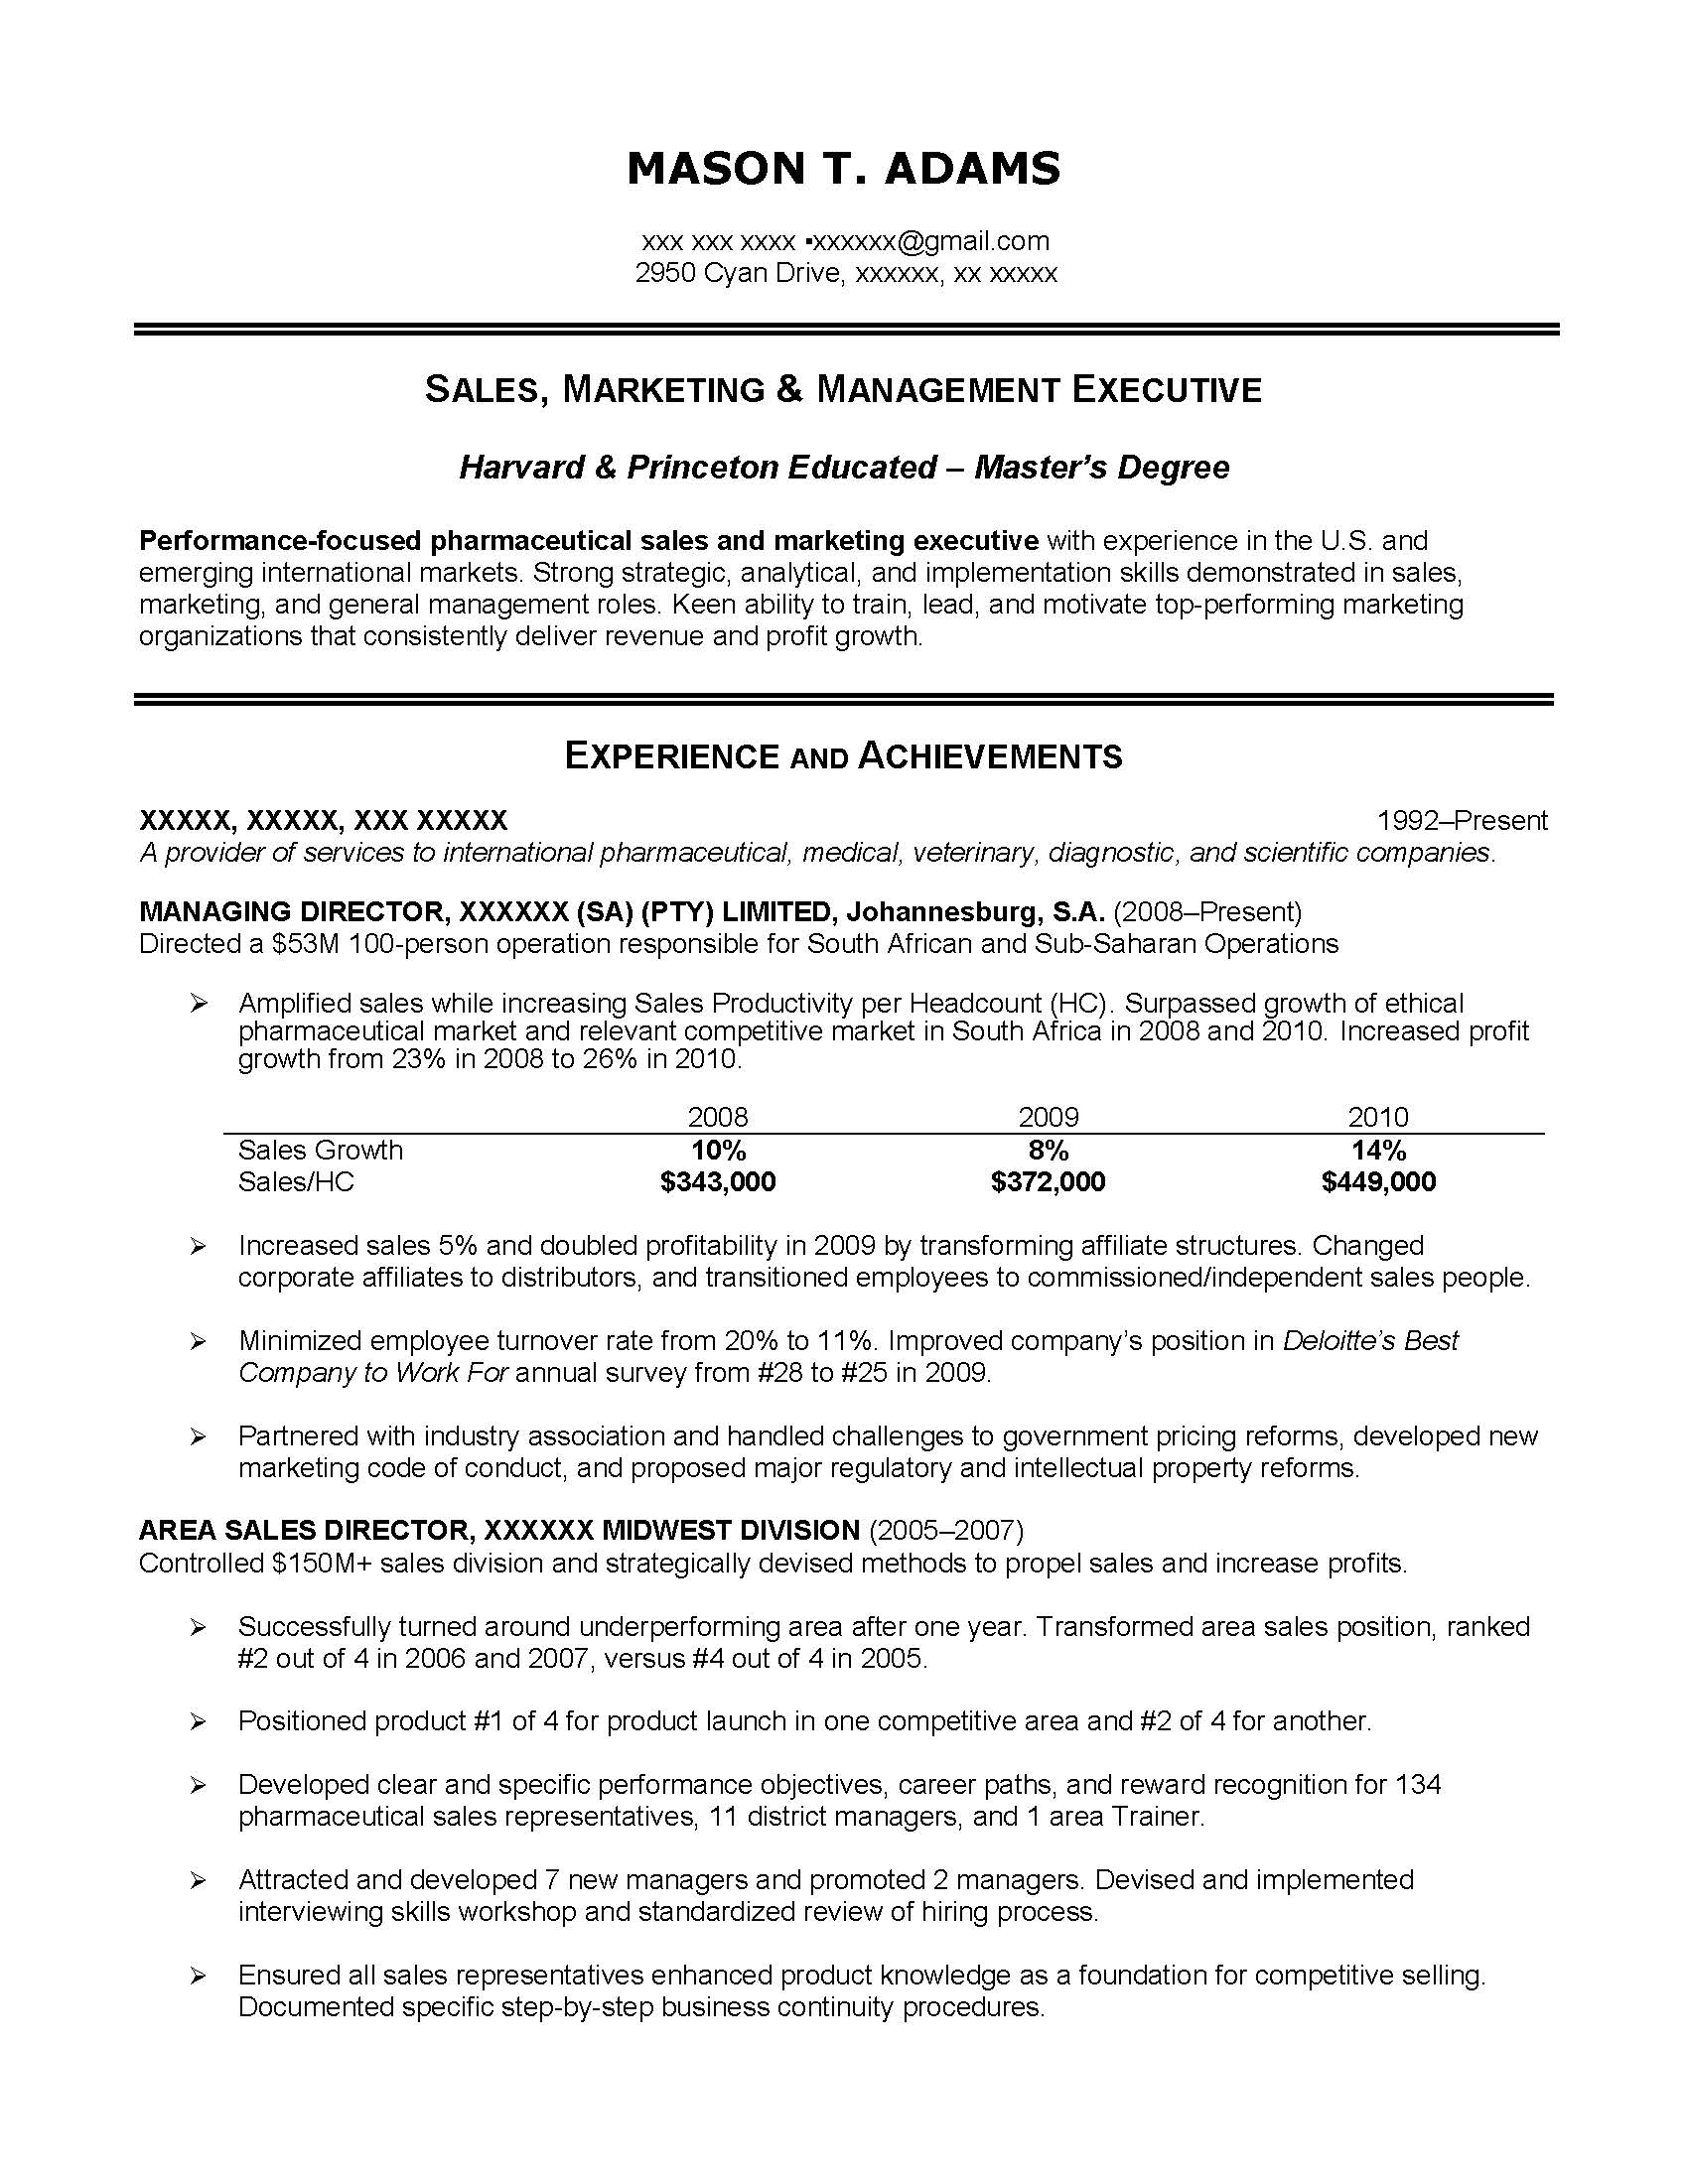 Executive Sales Resume Sample, Provided By Elite Resume Writing Services